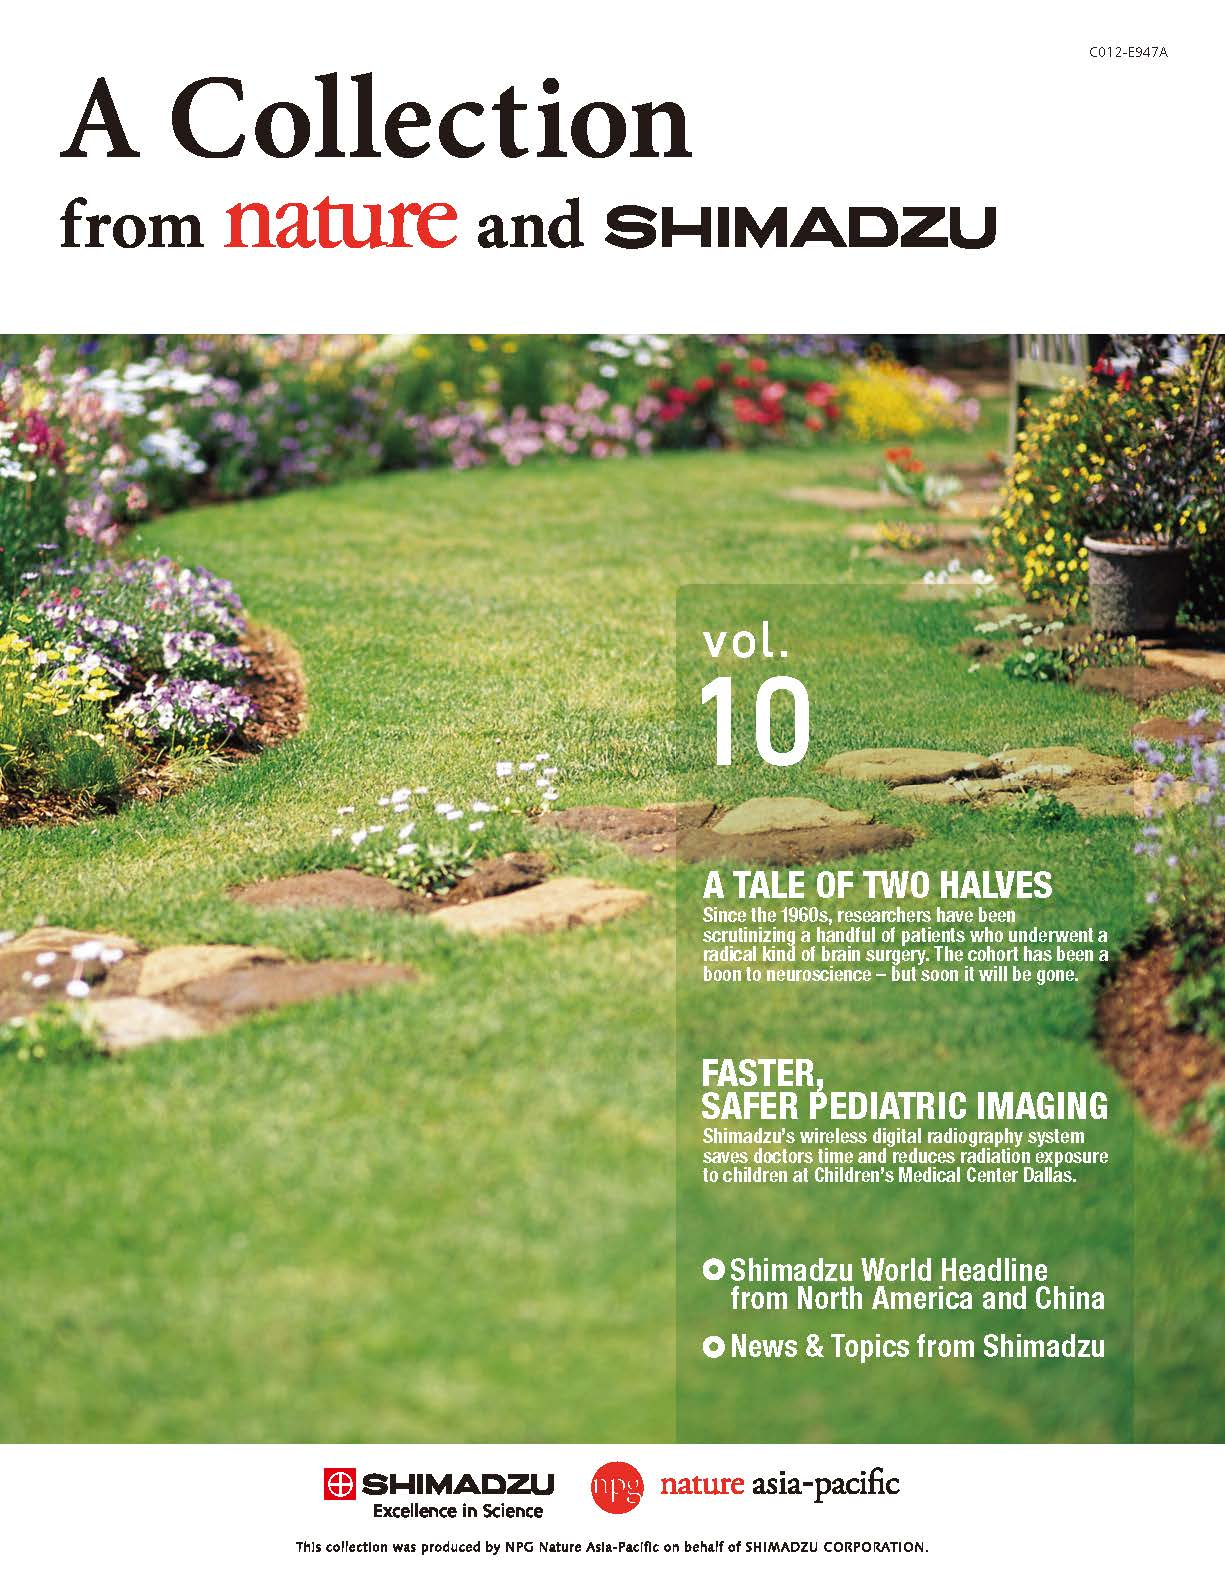 A Collection from nature and SHIMADZU